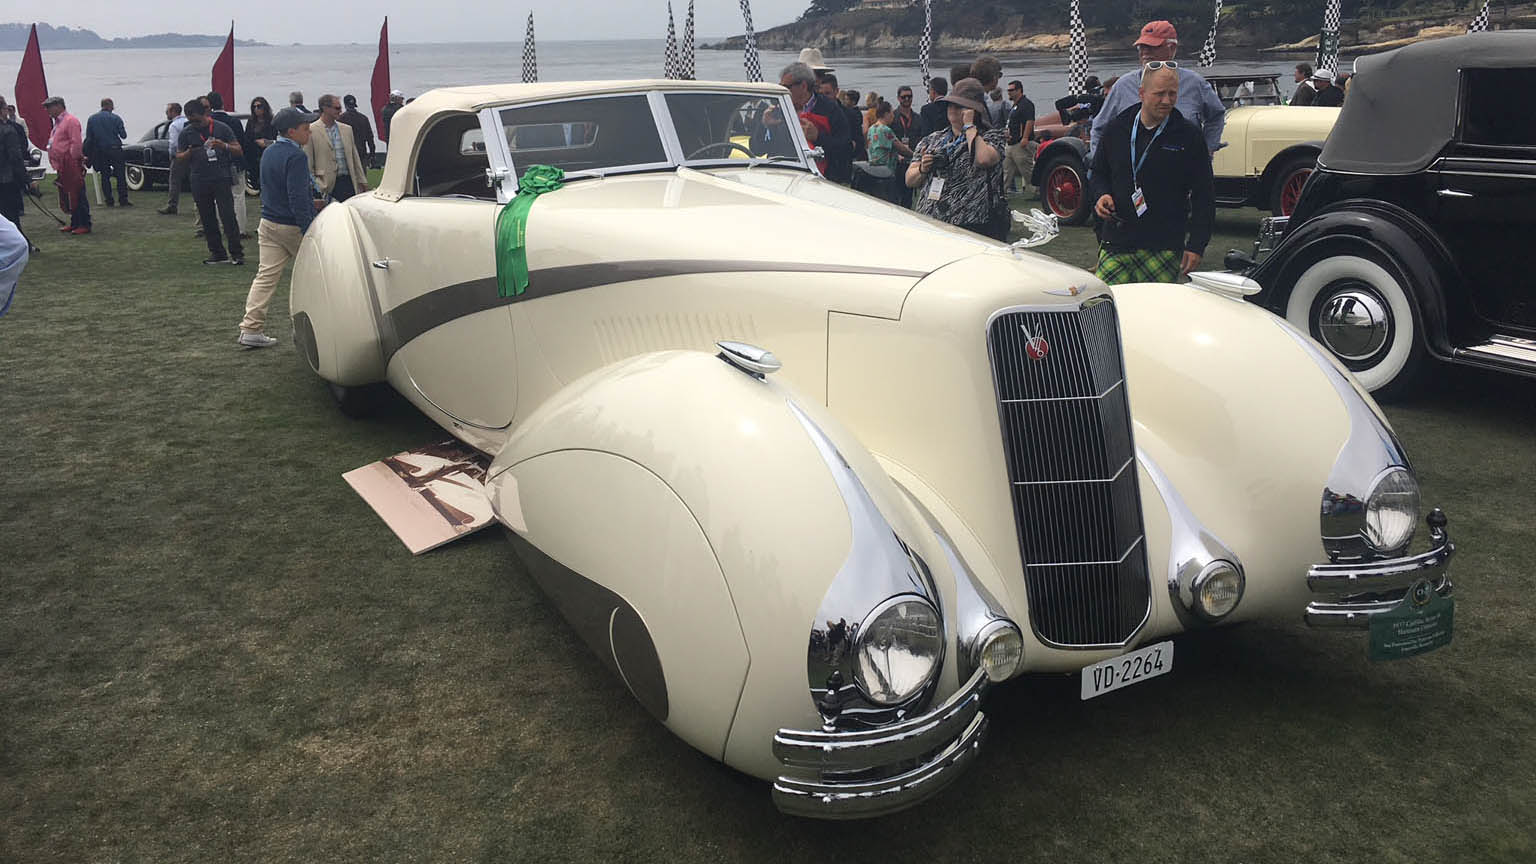 Best Cars Of The Pebble Beach Concours DElegance Automobile - Pebble beach car show 2018